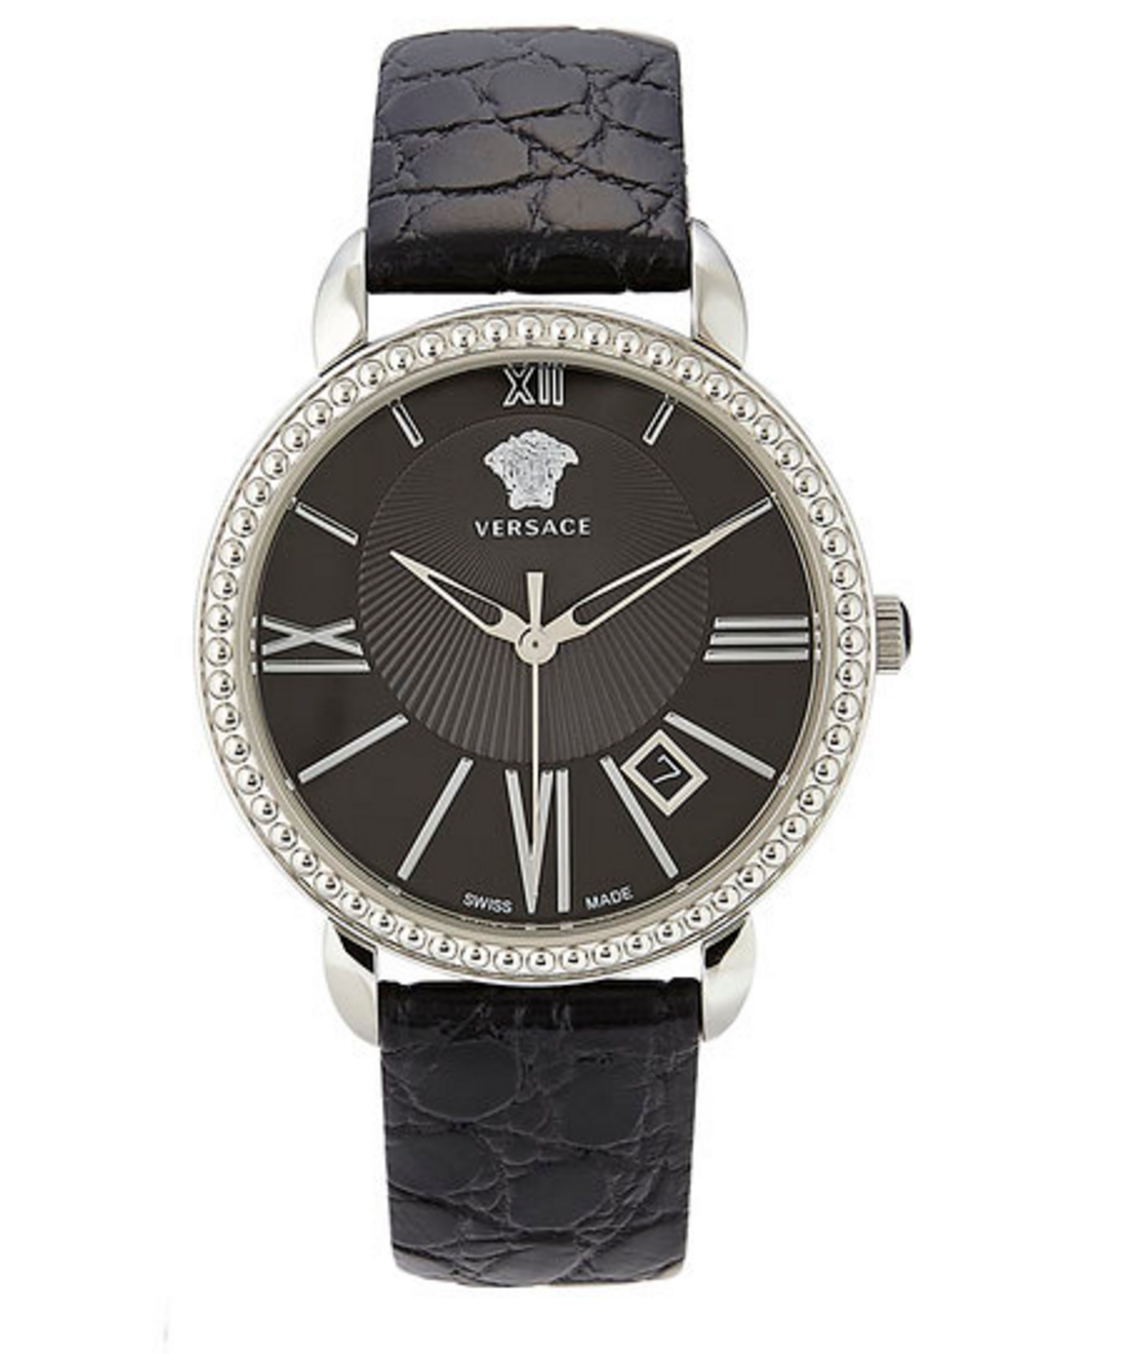 Versace Silver-Tone & Black Watch